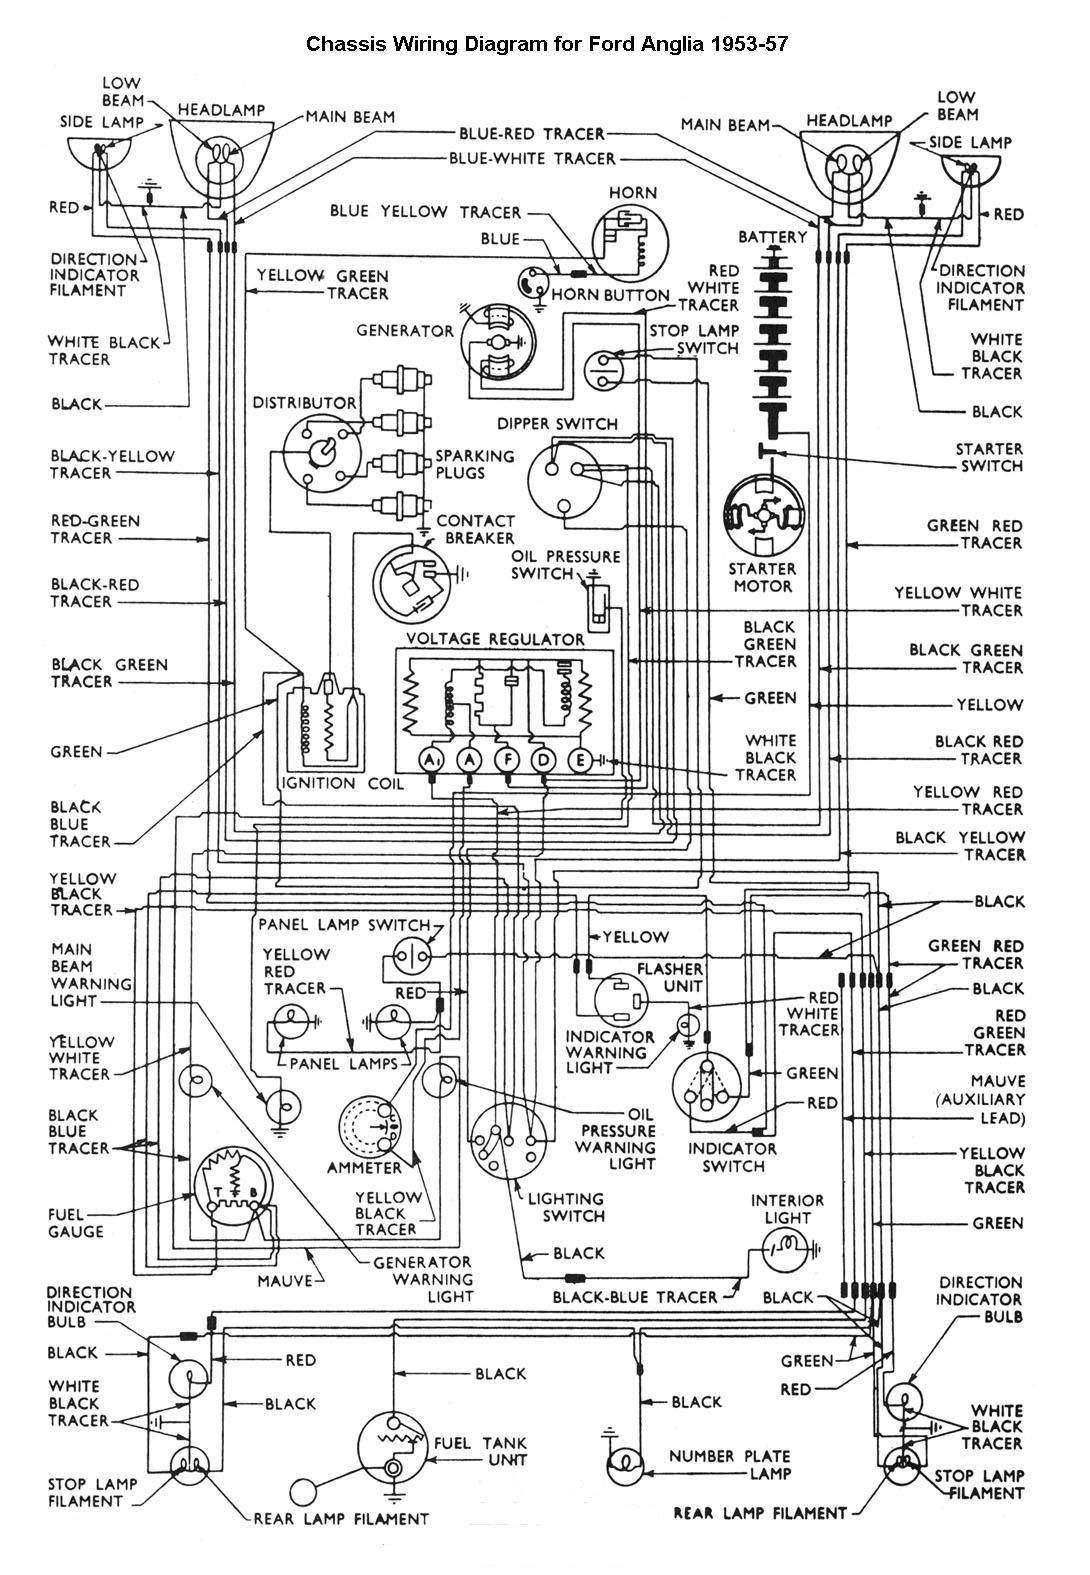 Car Wiring Diagram With Images Truck Repair Automotive